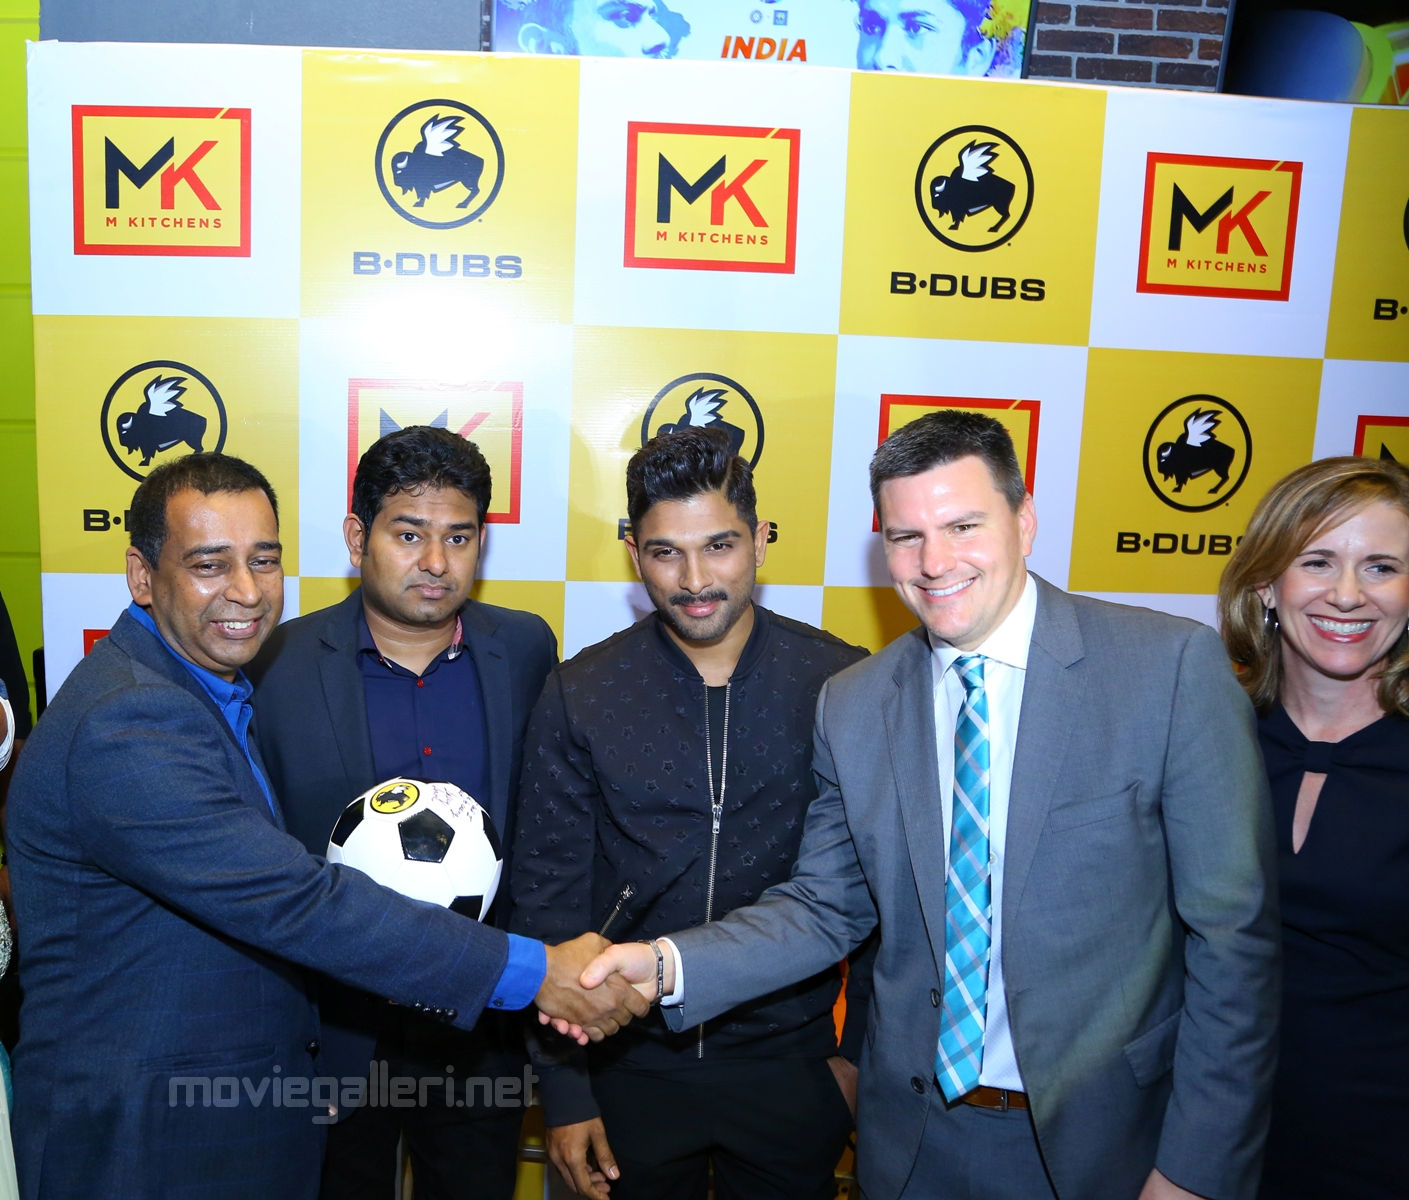 Allu Arjun, Tim Murphy, MD, BWW, Kedar Selagamsetty, founder and Director of M Kitchen and Sam Reddy Co-founder and Director of M Kitechen at the inauguration of Grand oppening of India's first Buffalo